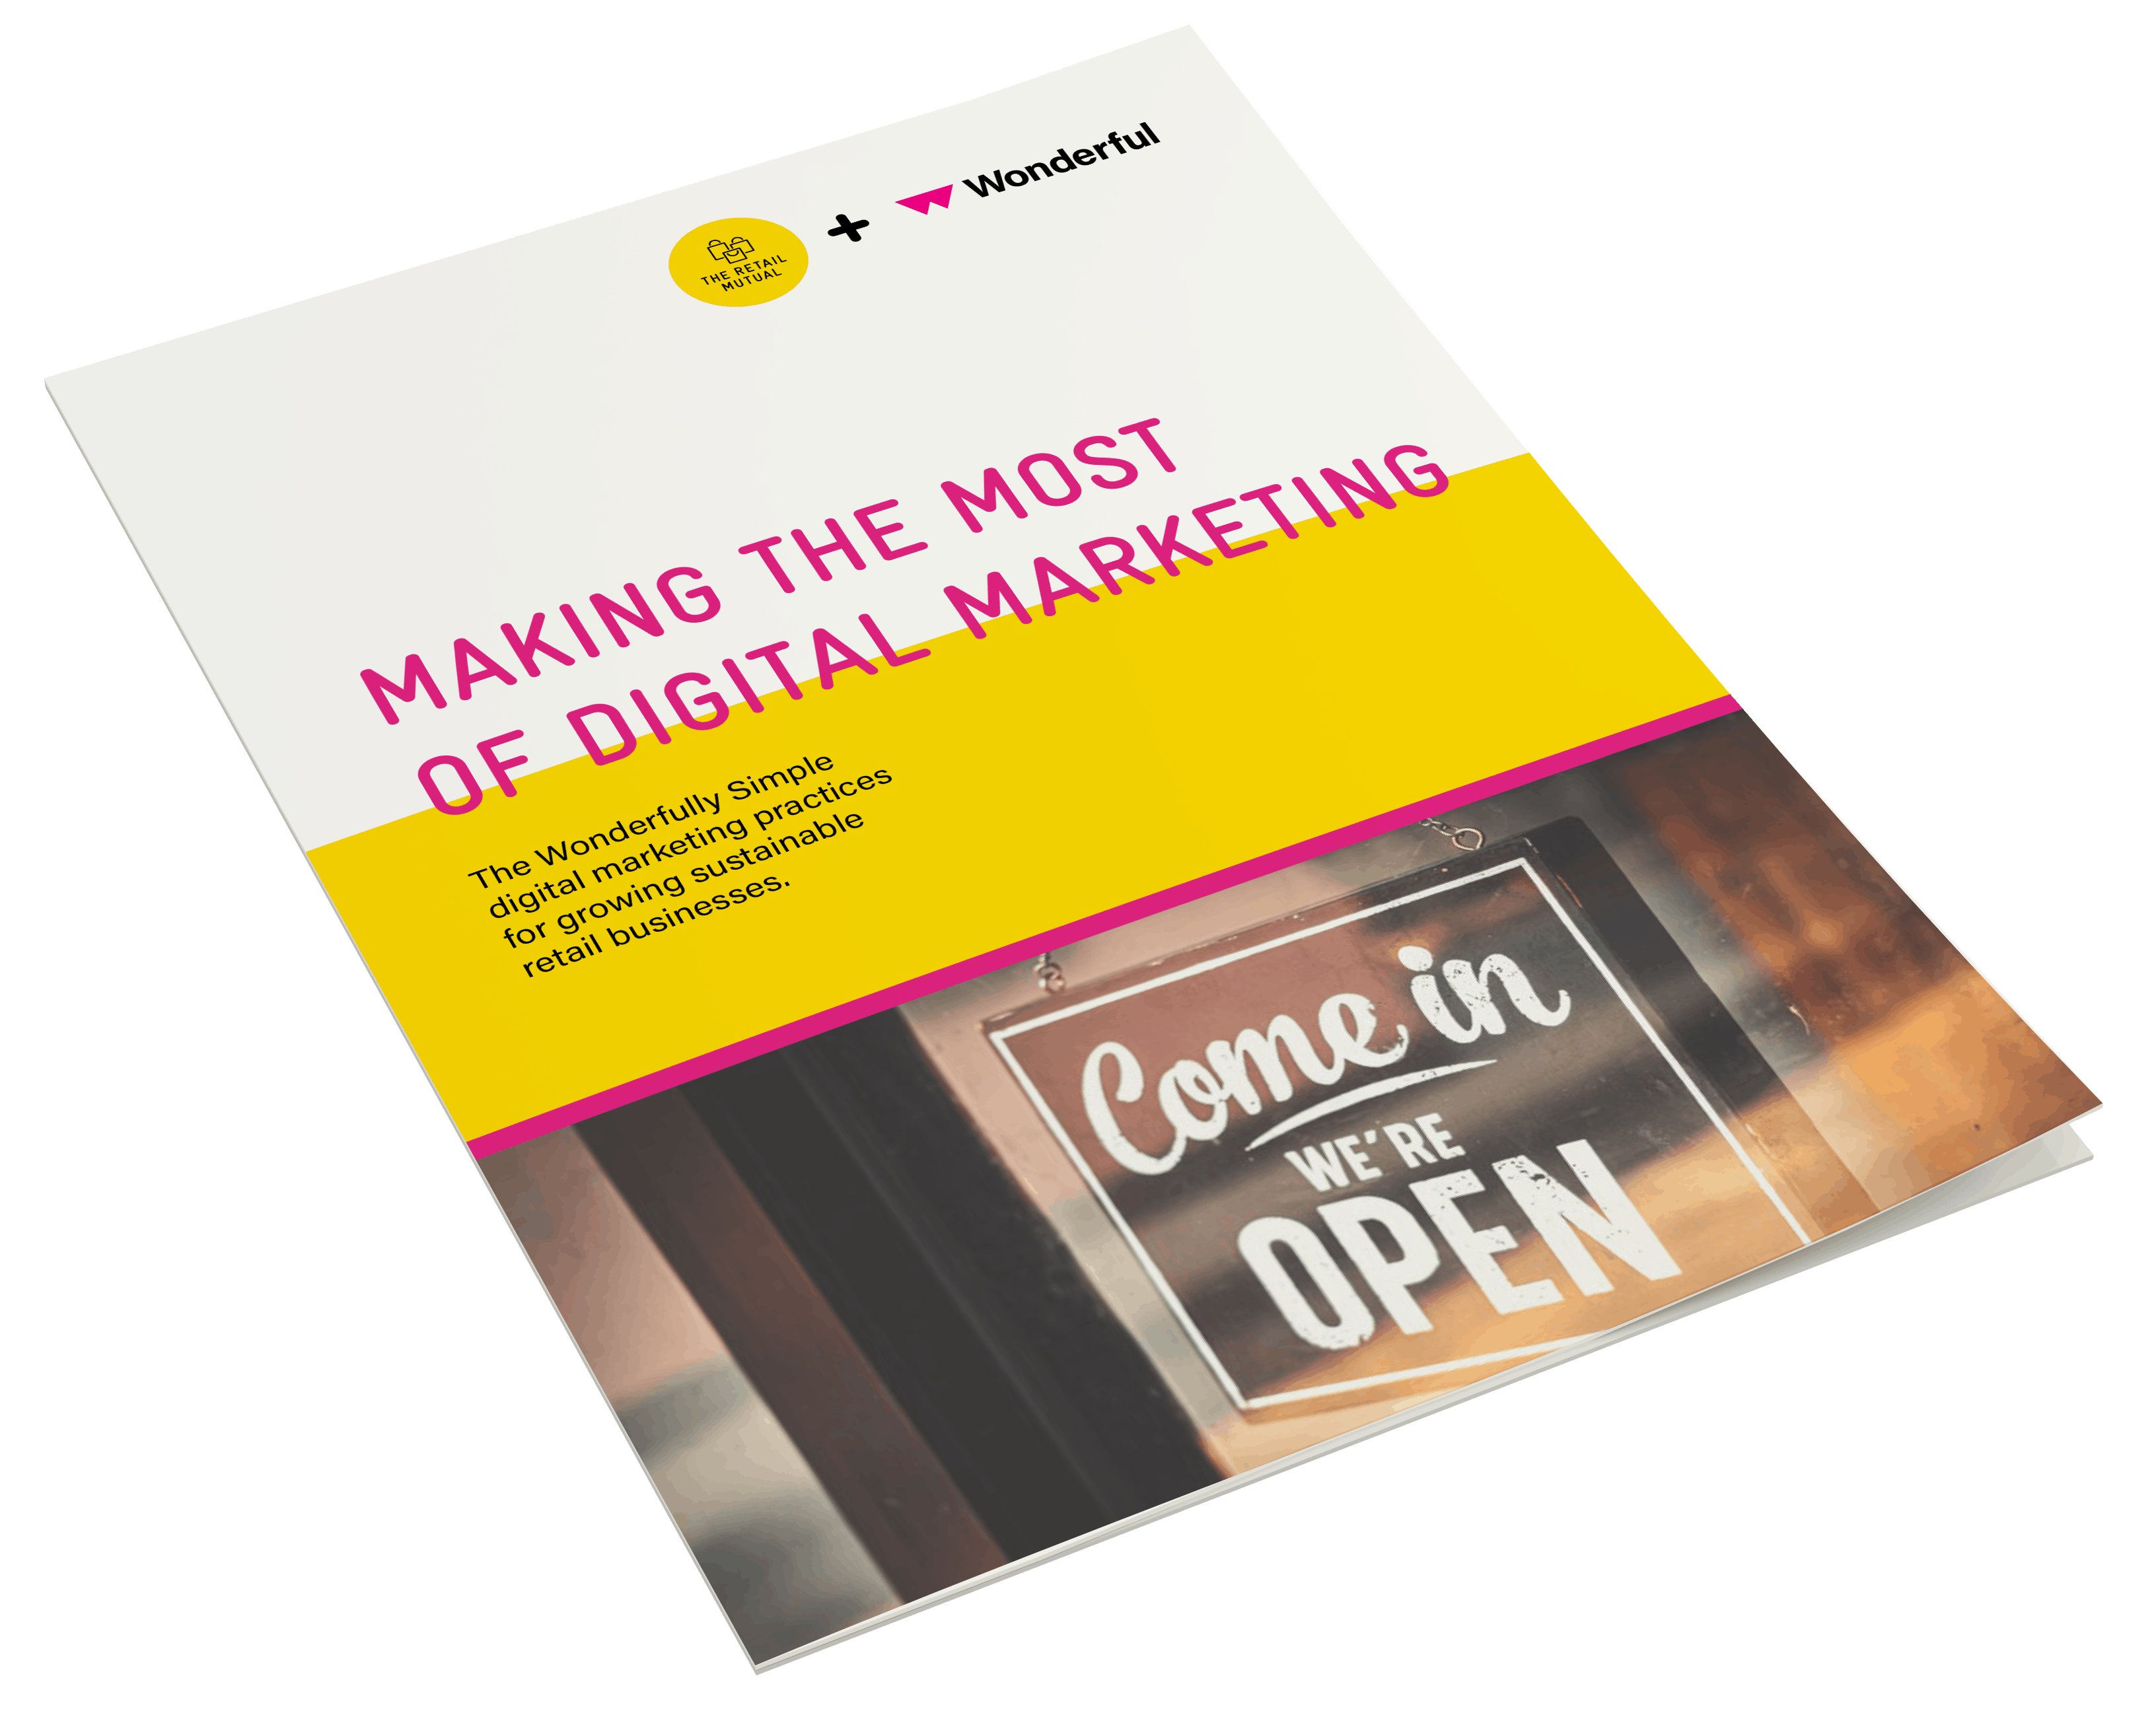 Digital Marketing Guide for Independent Retailers by Wonderful and The Retail Mutual